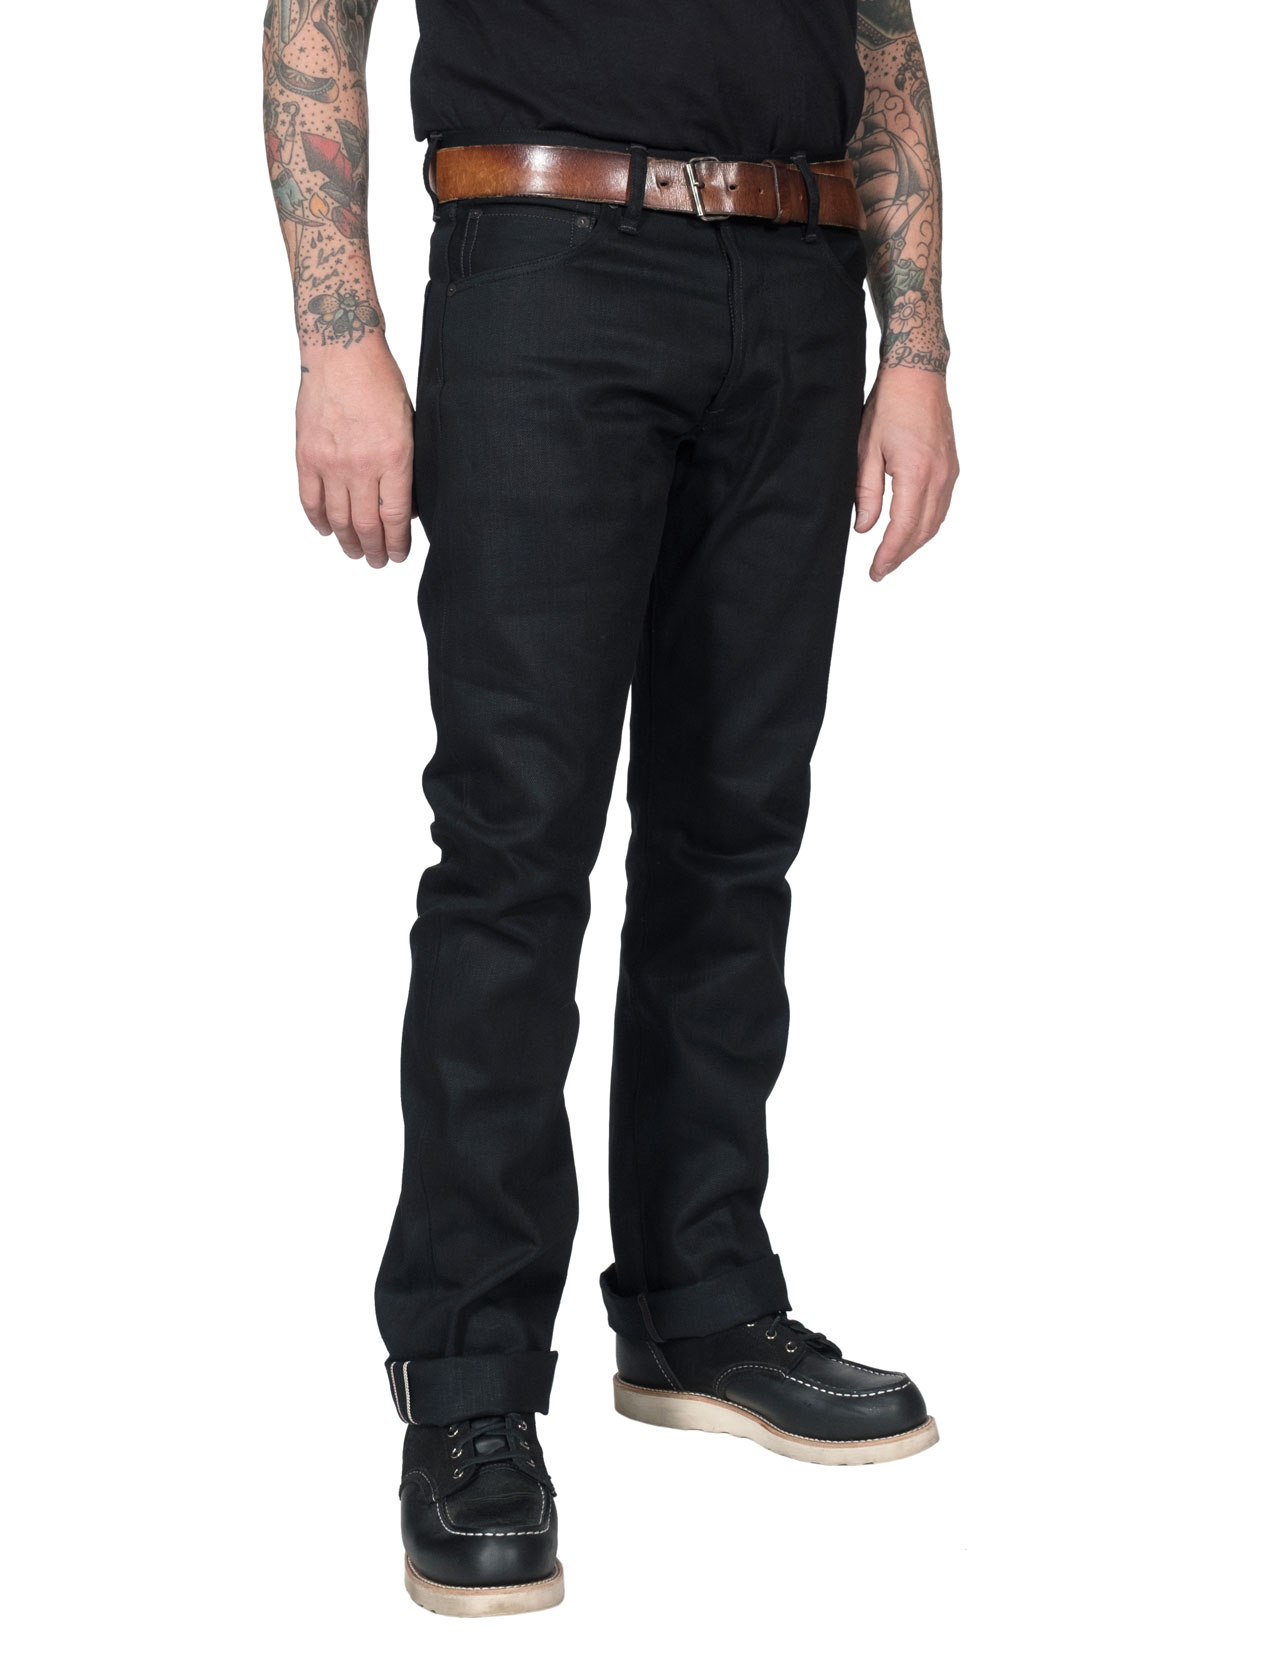 Indigofera---Iconic-Hawk-Jeans-Gunpowder-Black-Selvage-Jeans---14oz-1